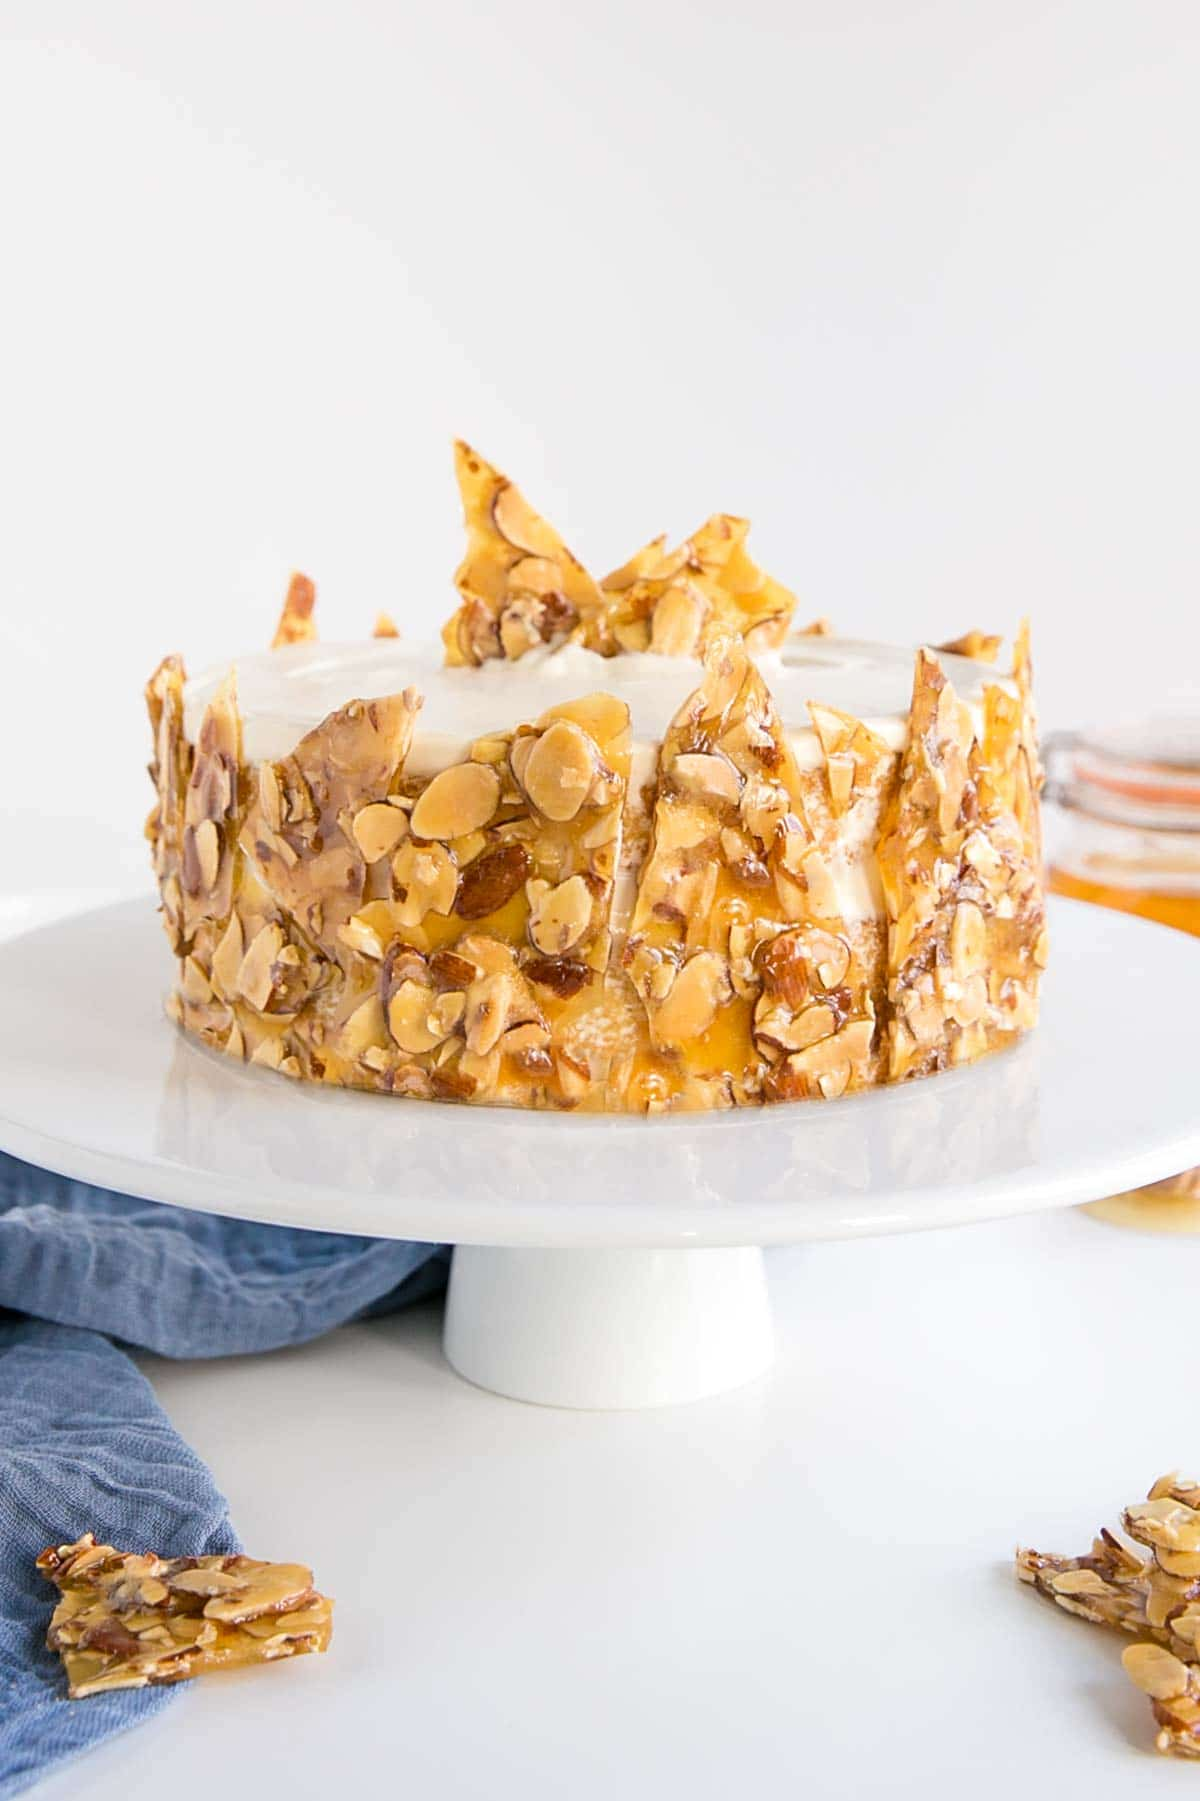 Honey Almond cake on a white cake stand with a blue cloth under it.